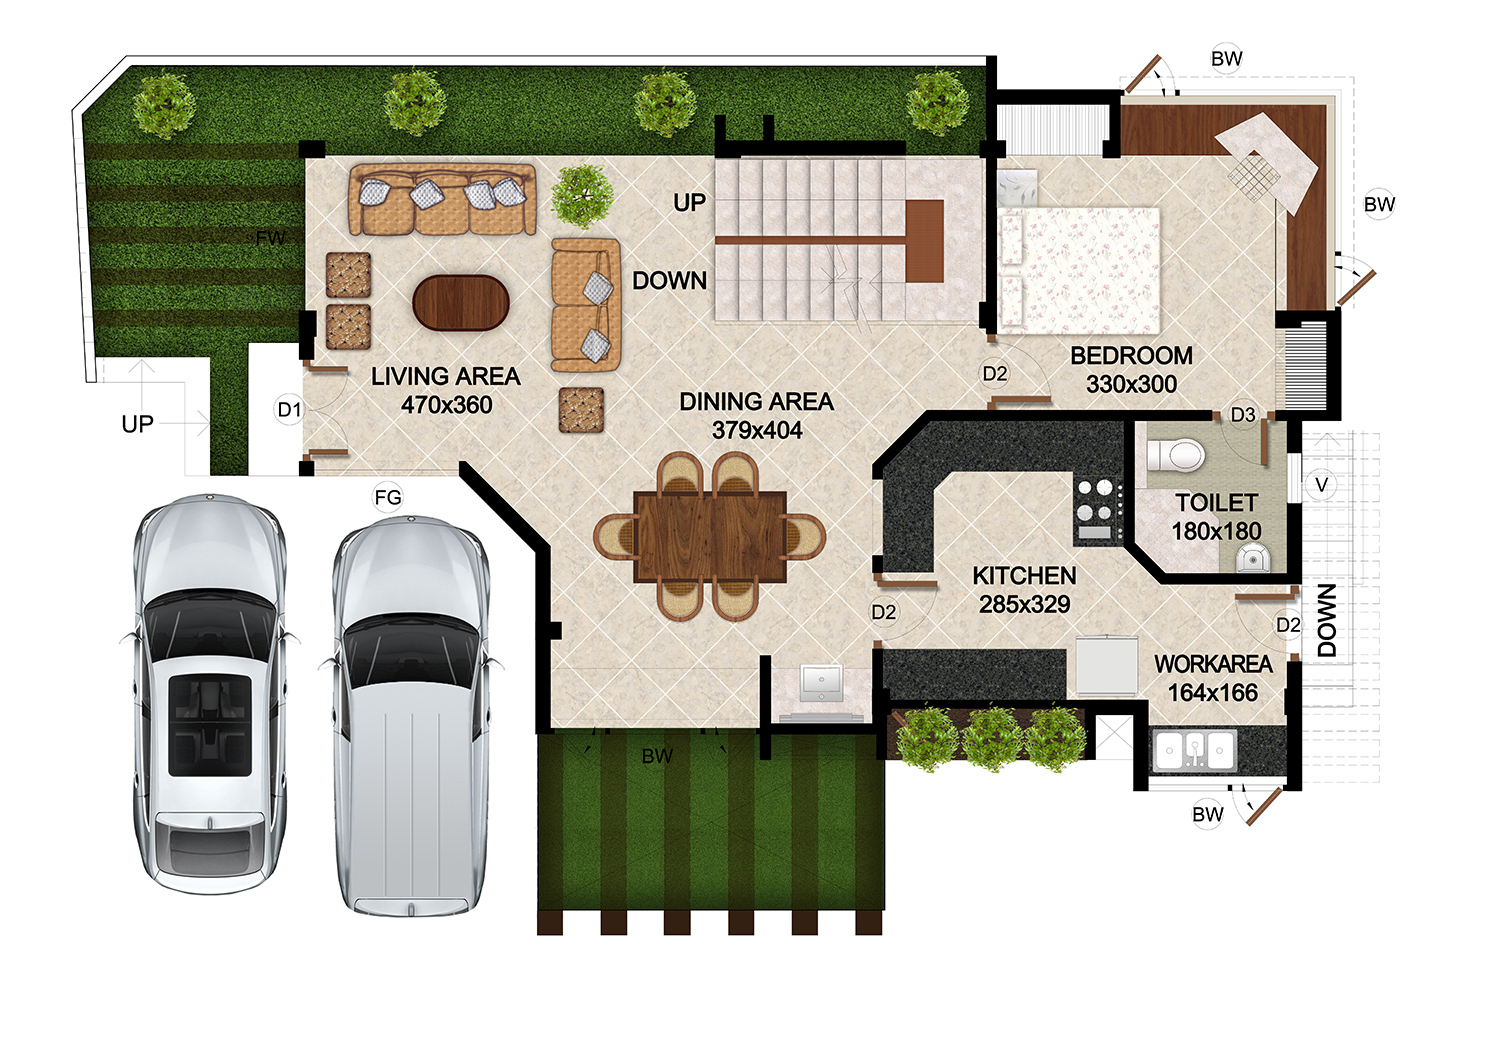 ClaySys Heights Villa Kakkanad - Floor Plan - Ground Floor